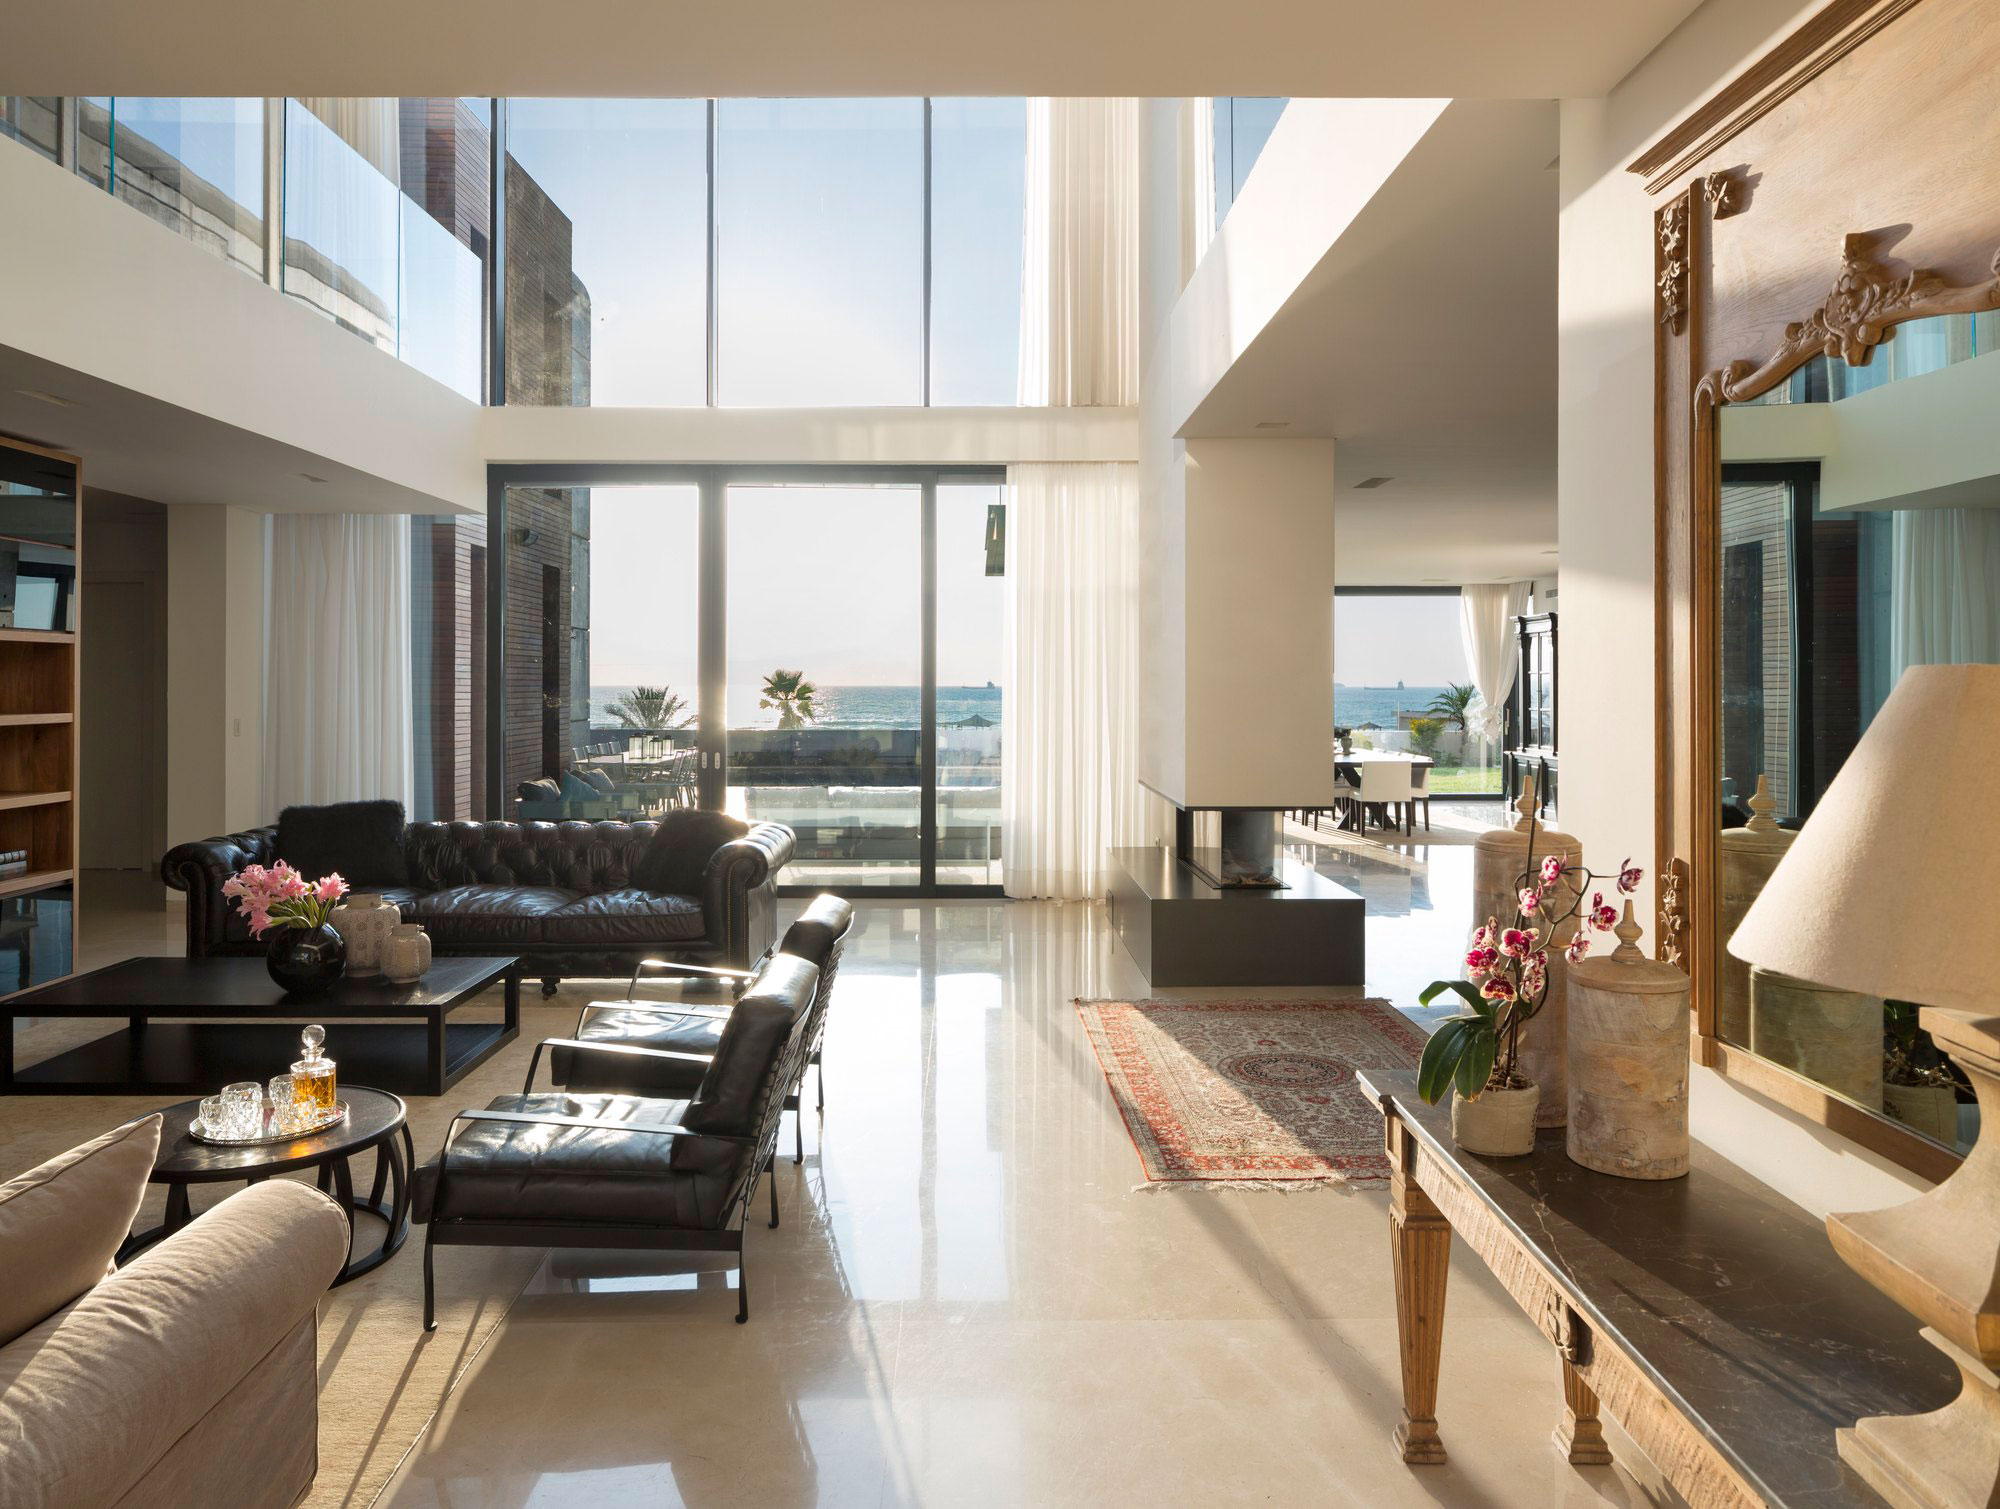 Nava Yavetz Architects Design a Spacious Contemporary House in Ashdod, Israel